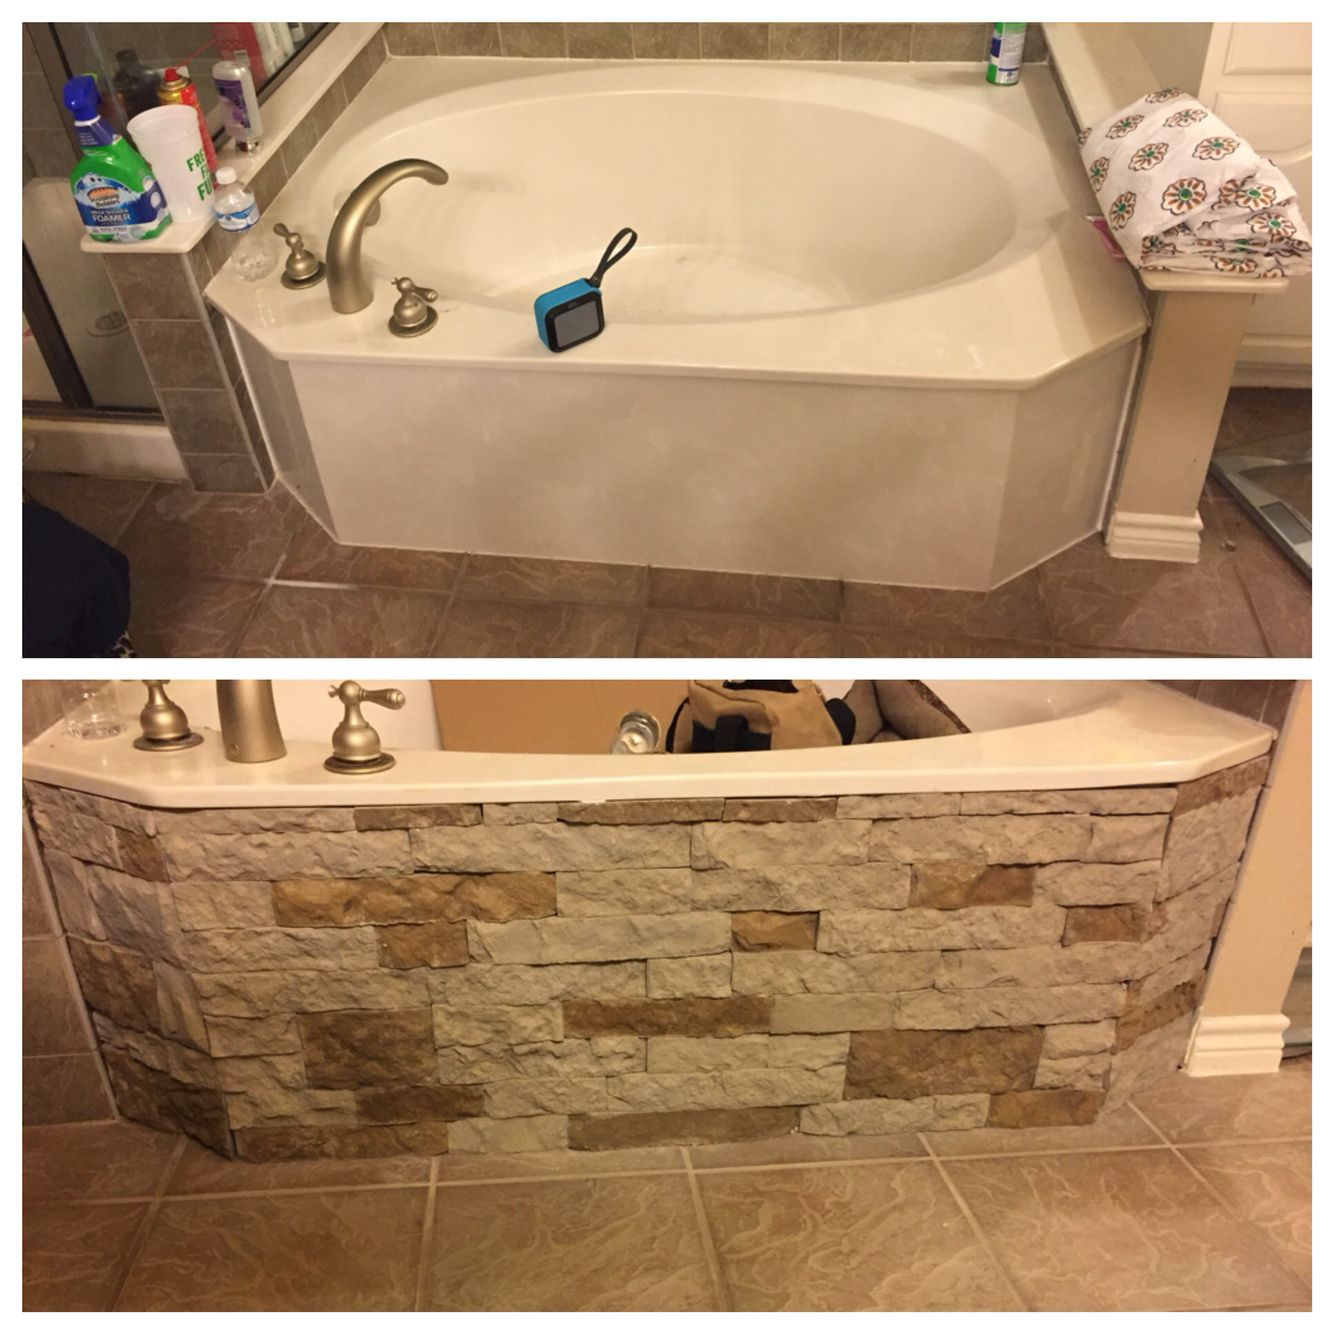 My Bathtub Remodel With Airstone!